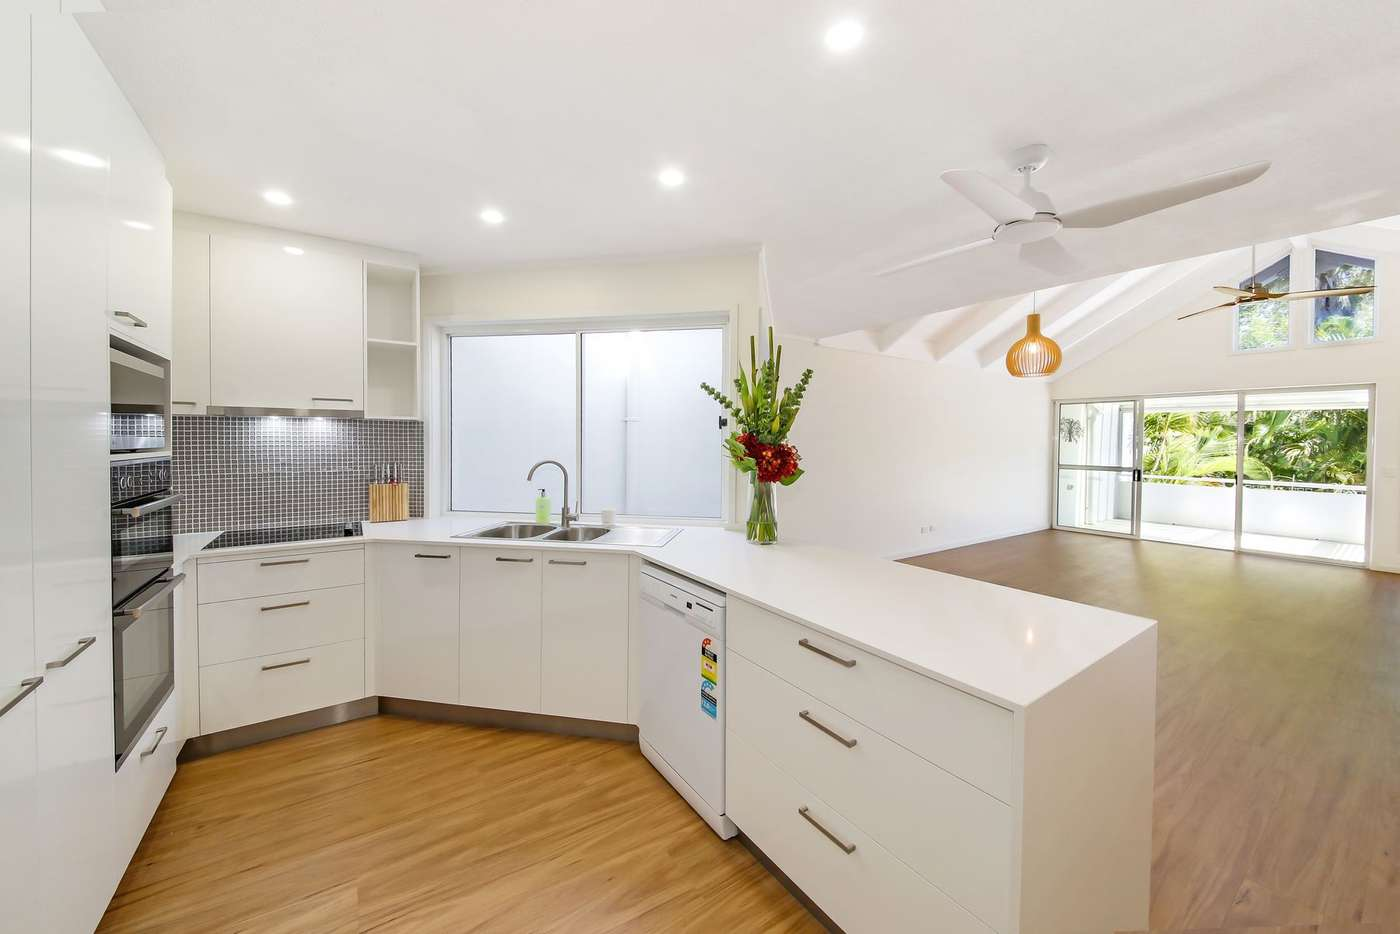 Fifth view of Homely townhouse listing, 10/2 Banksia Avenue, Noosa Heads QLD 4567